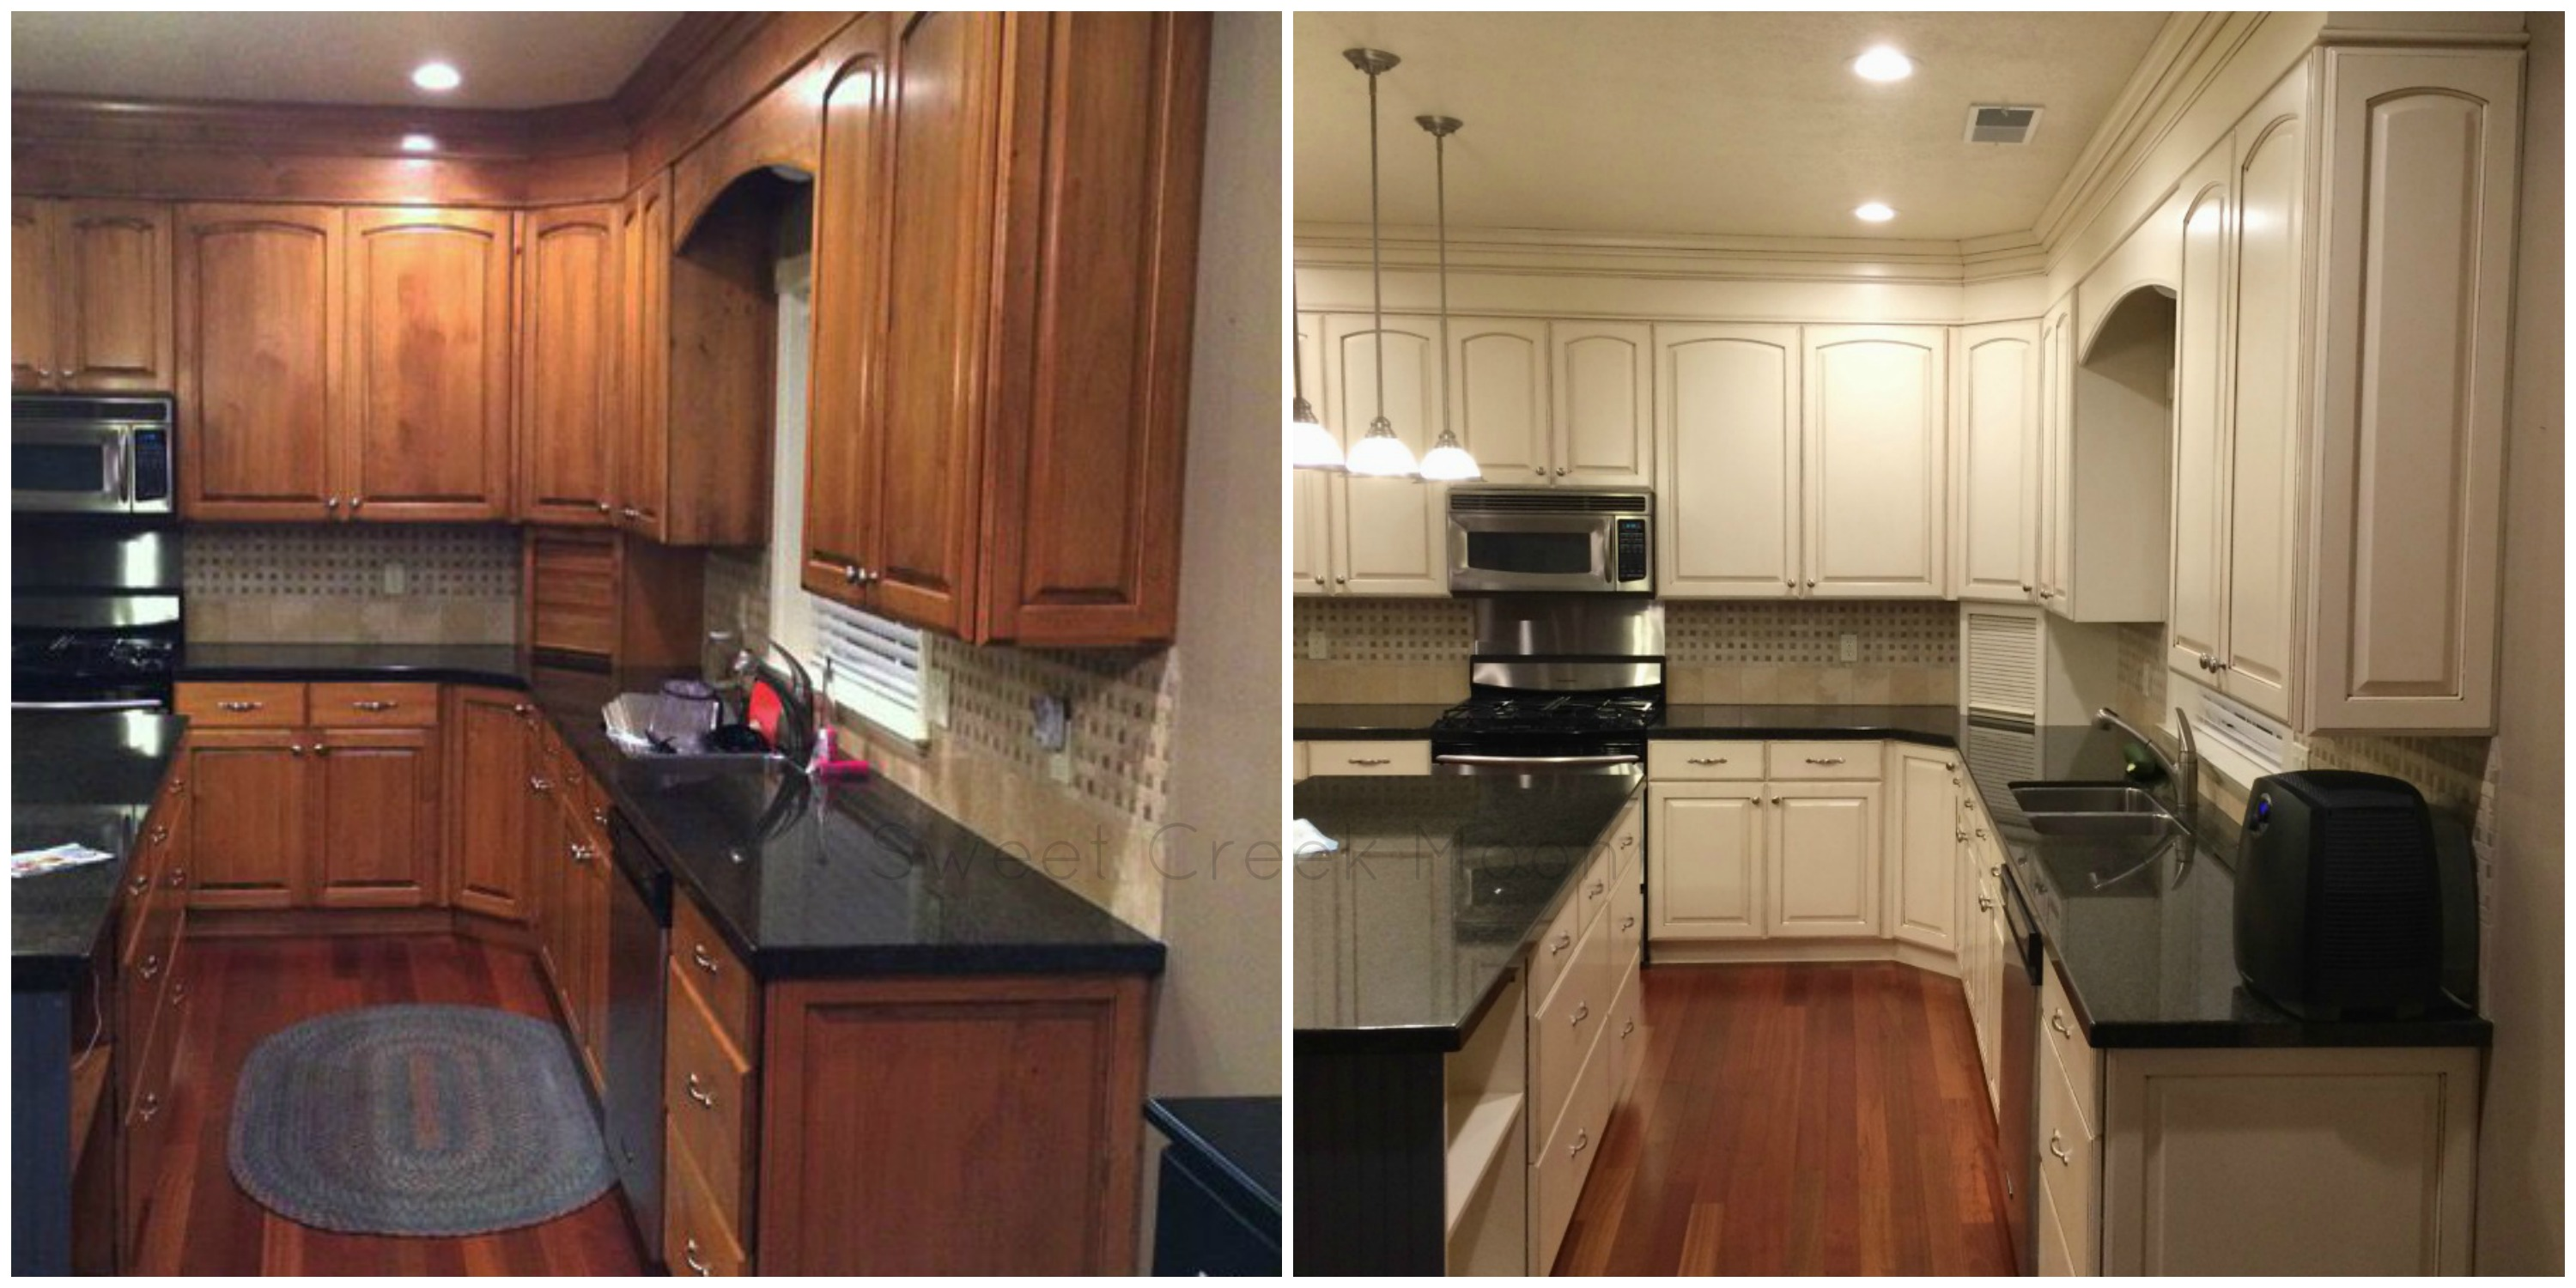 Kitchen cabinet makeover 2015 sweet creek moon for Kitchen cabinets before and after